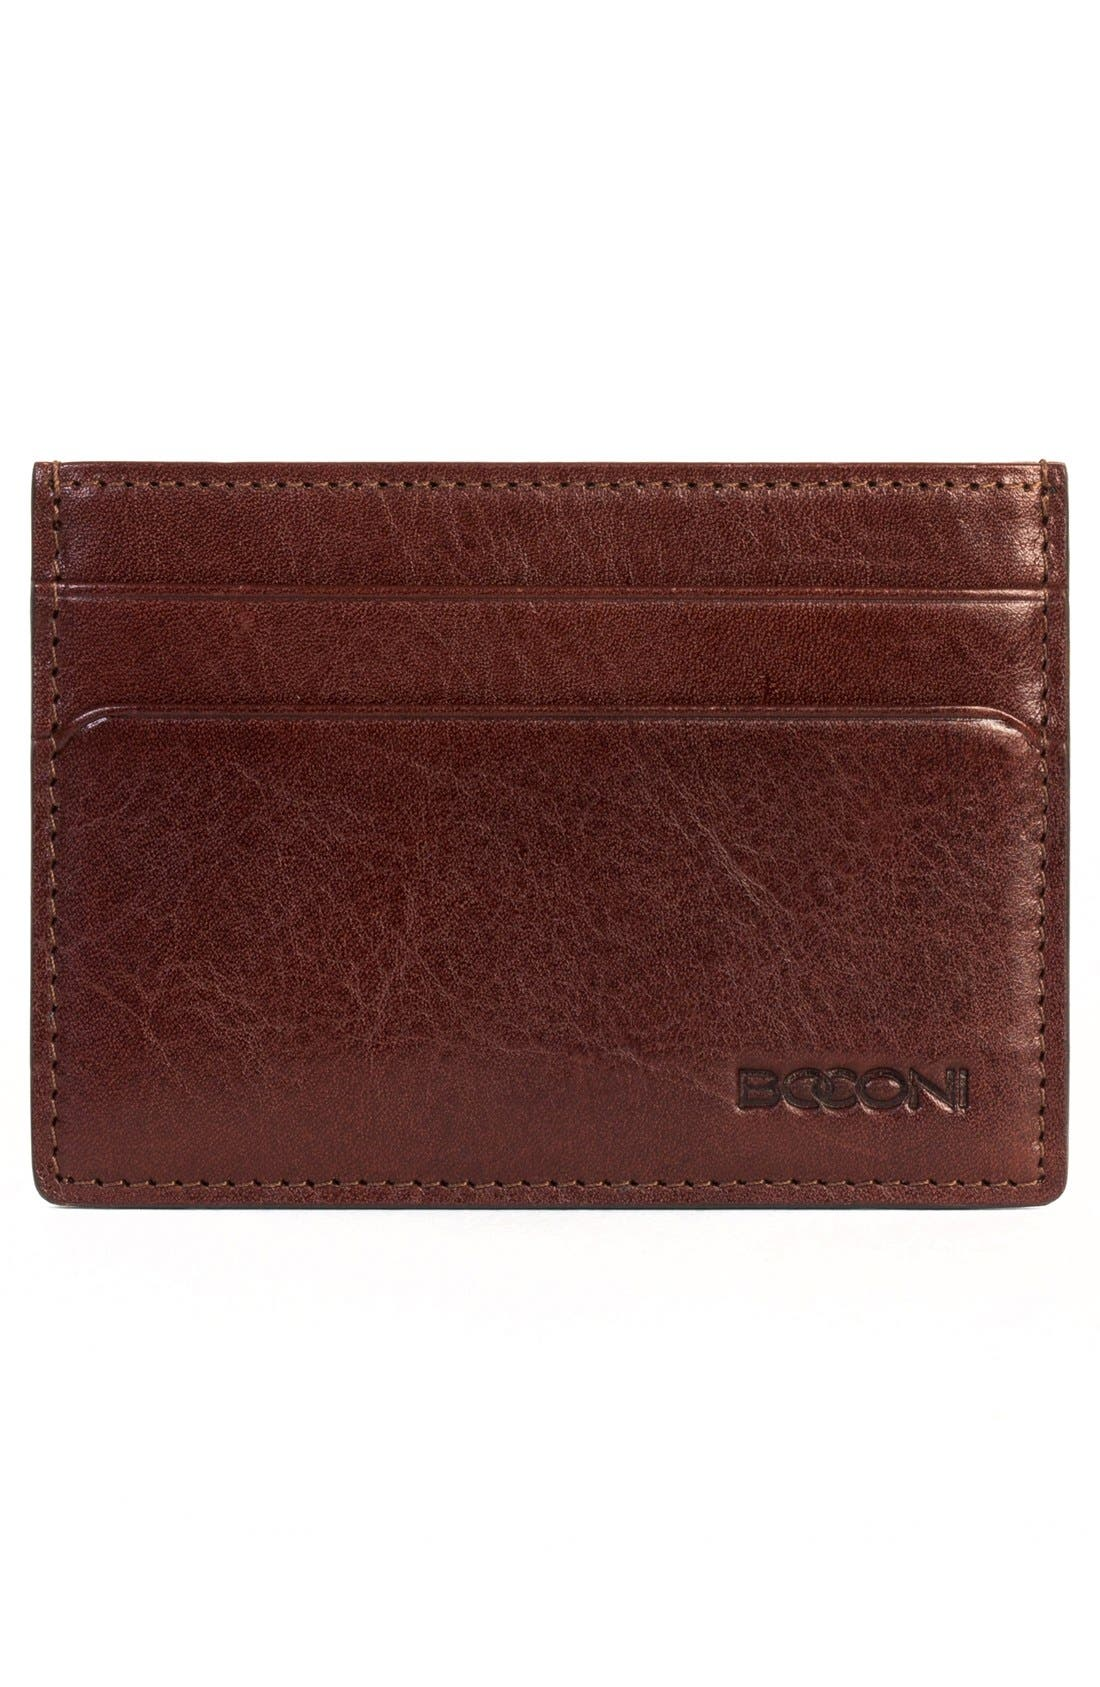 'Becker' Leather Card Case,                             Alternate thumbnail 3, color,                             Whiskey